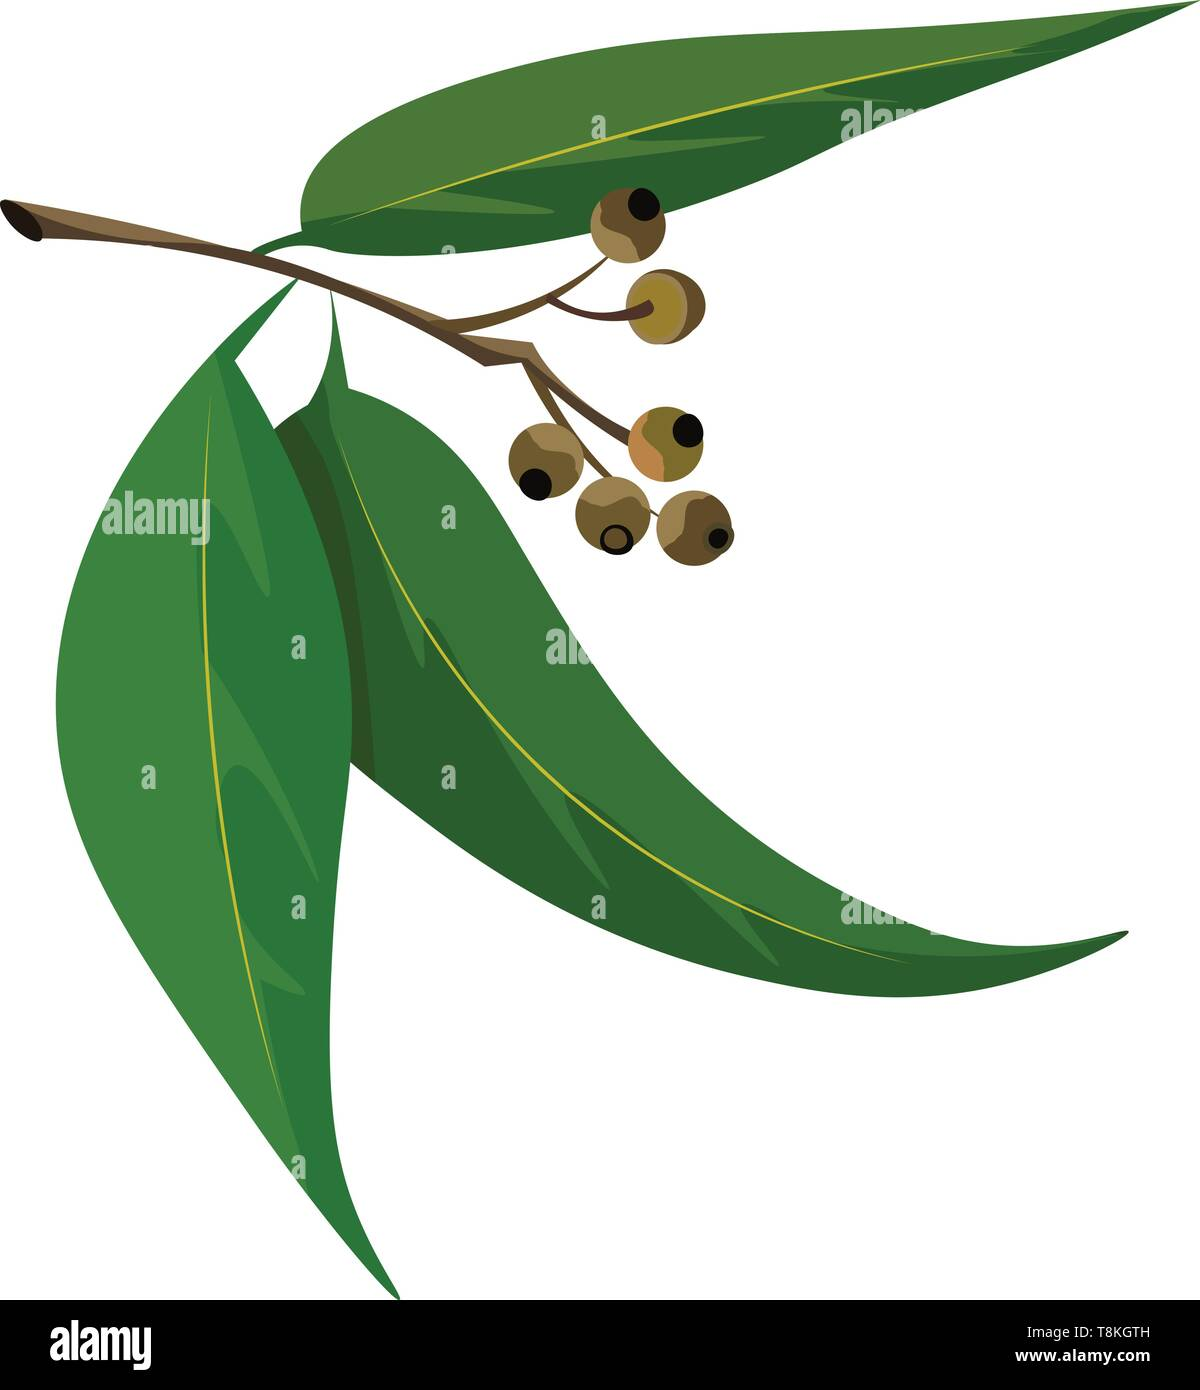 A color illustration of eucalyptus leaves with stem, vector, color drawing or illustration. - Stock Vector